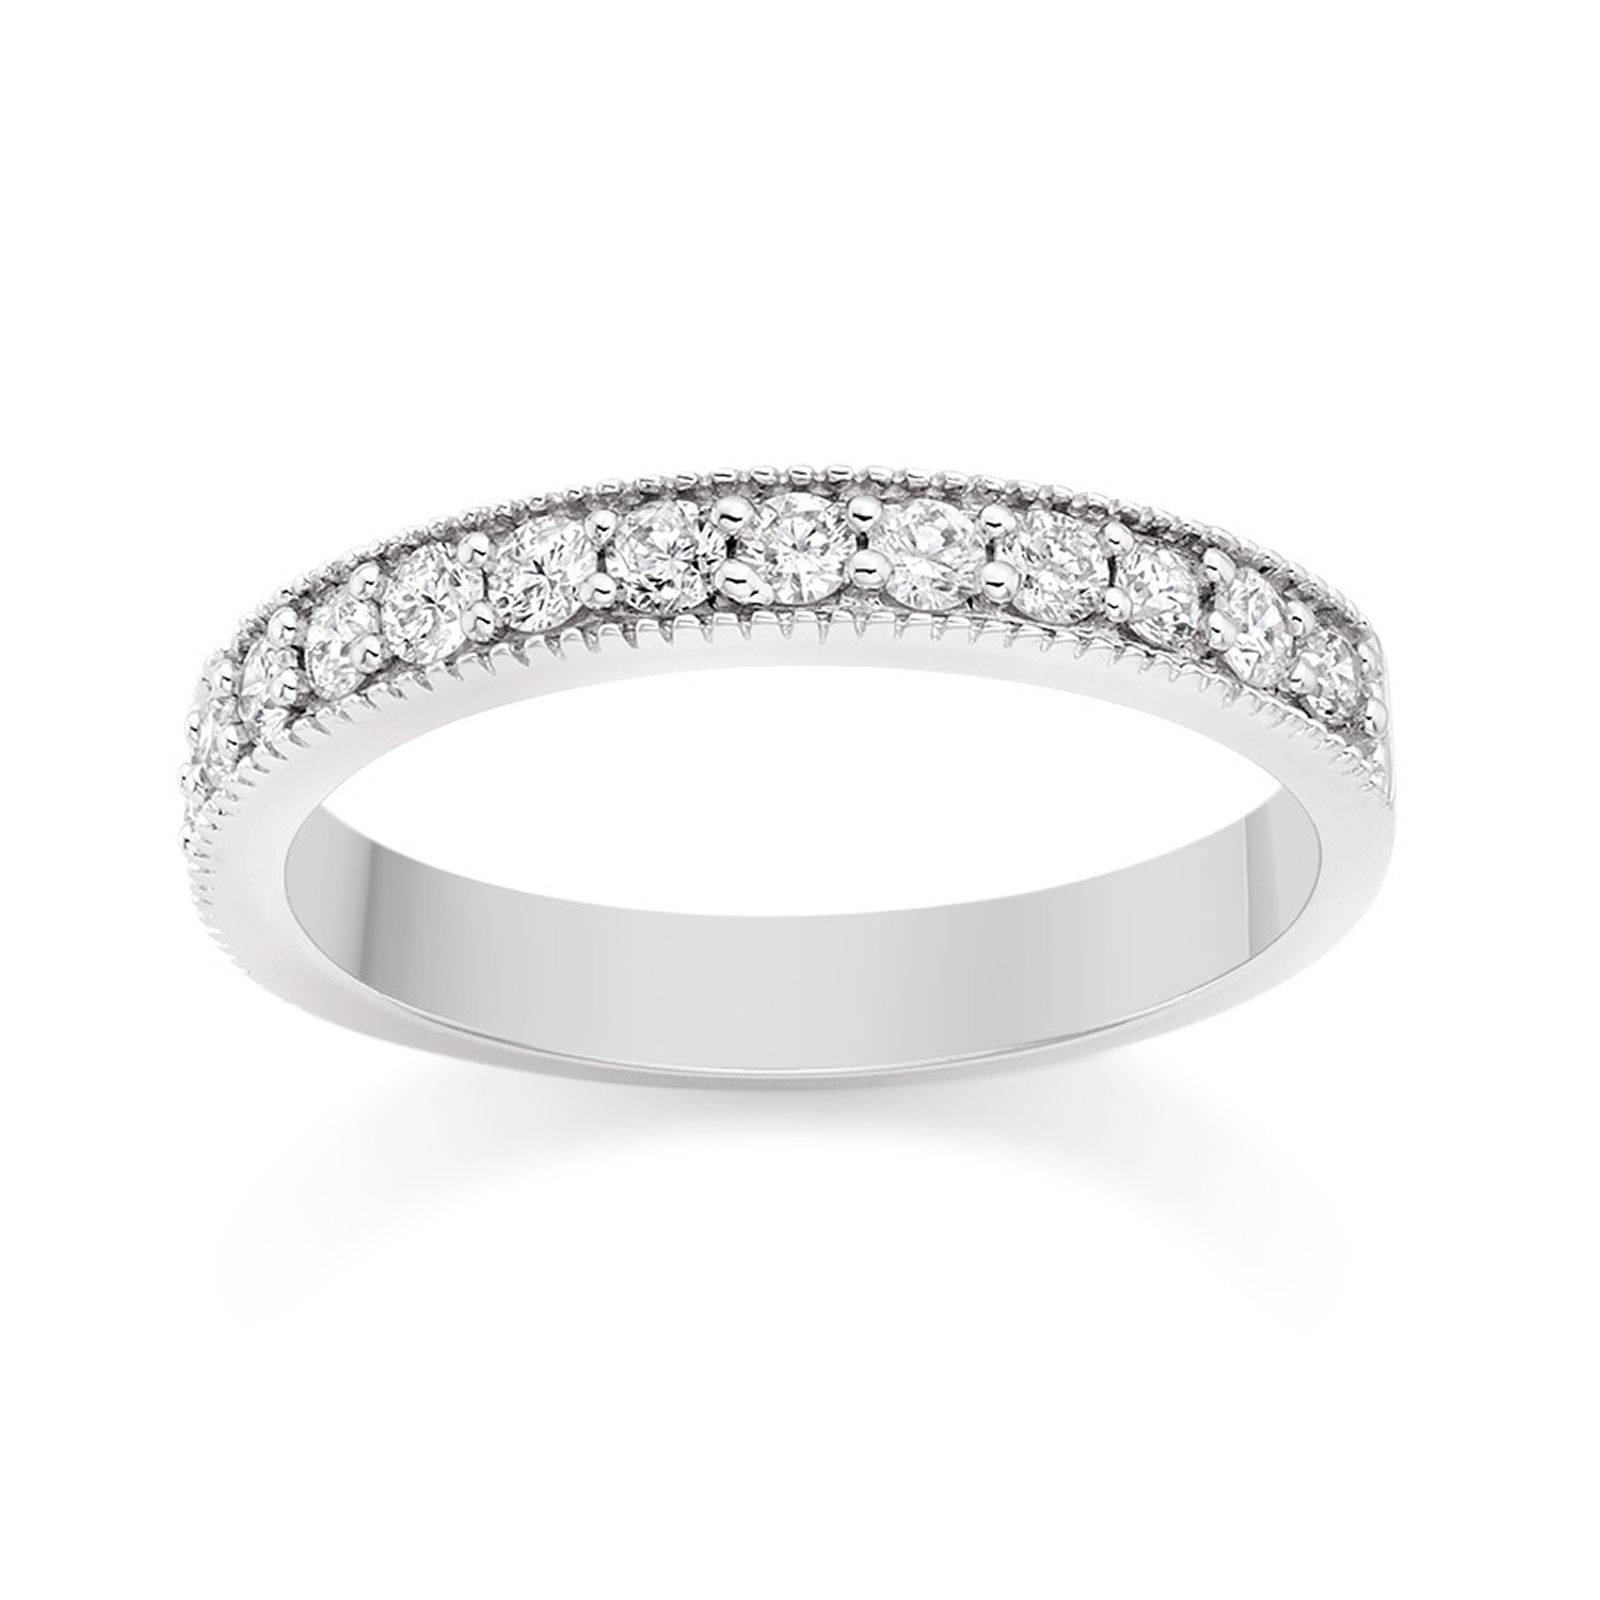 Milgrain Diamond Wedding Ring In Platinum Wedding Dress From With Regard To Latest Platinum Wedding Band With Diamonds (View 6 of 15)